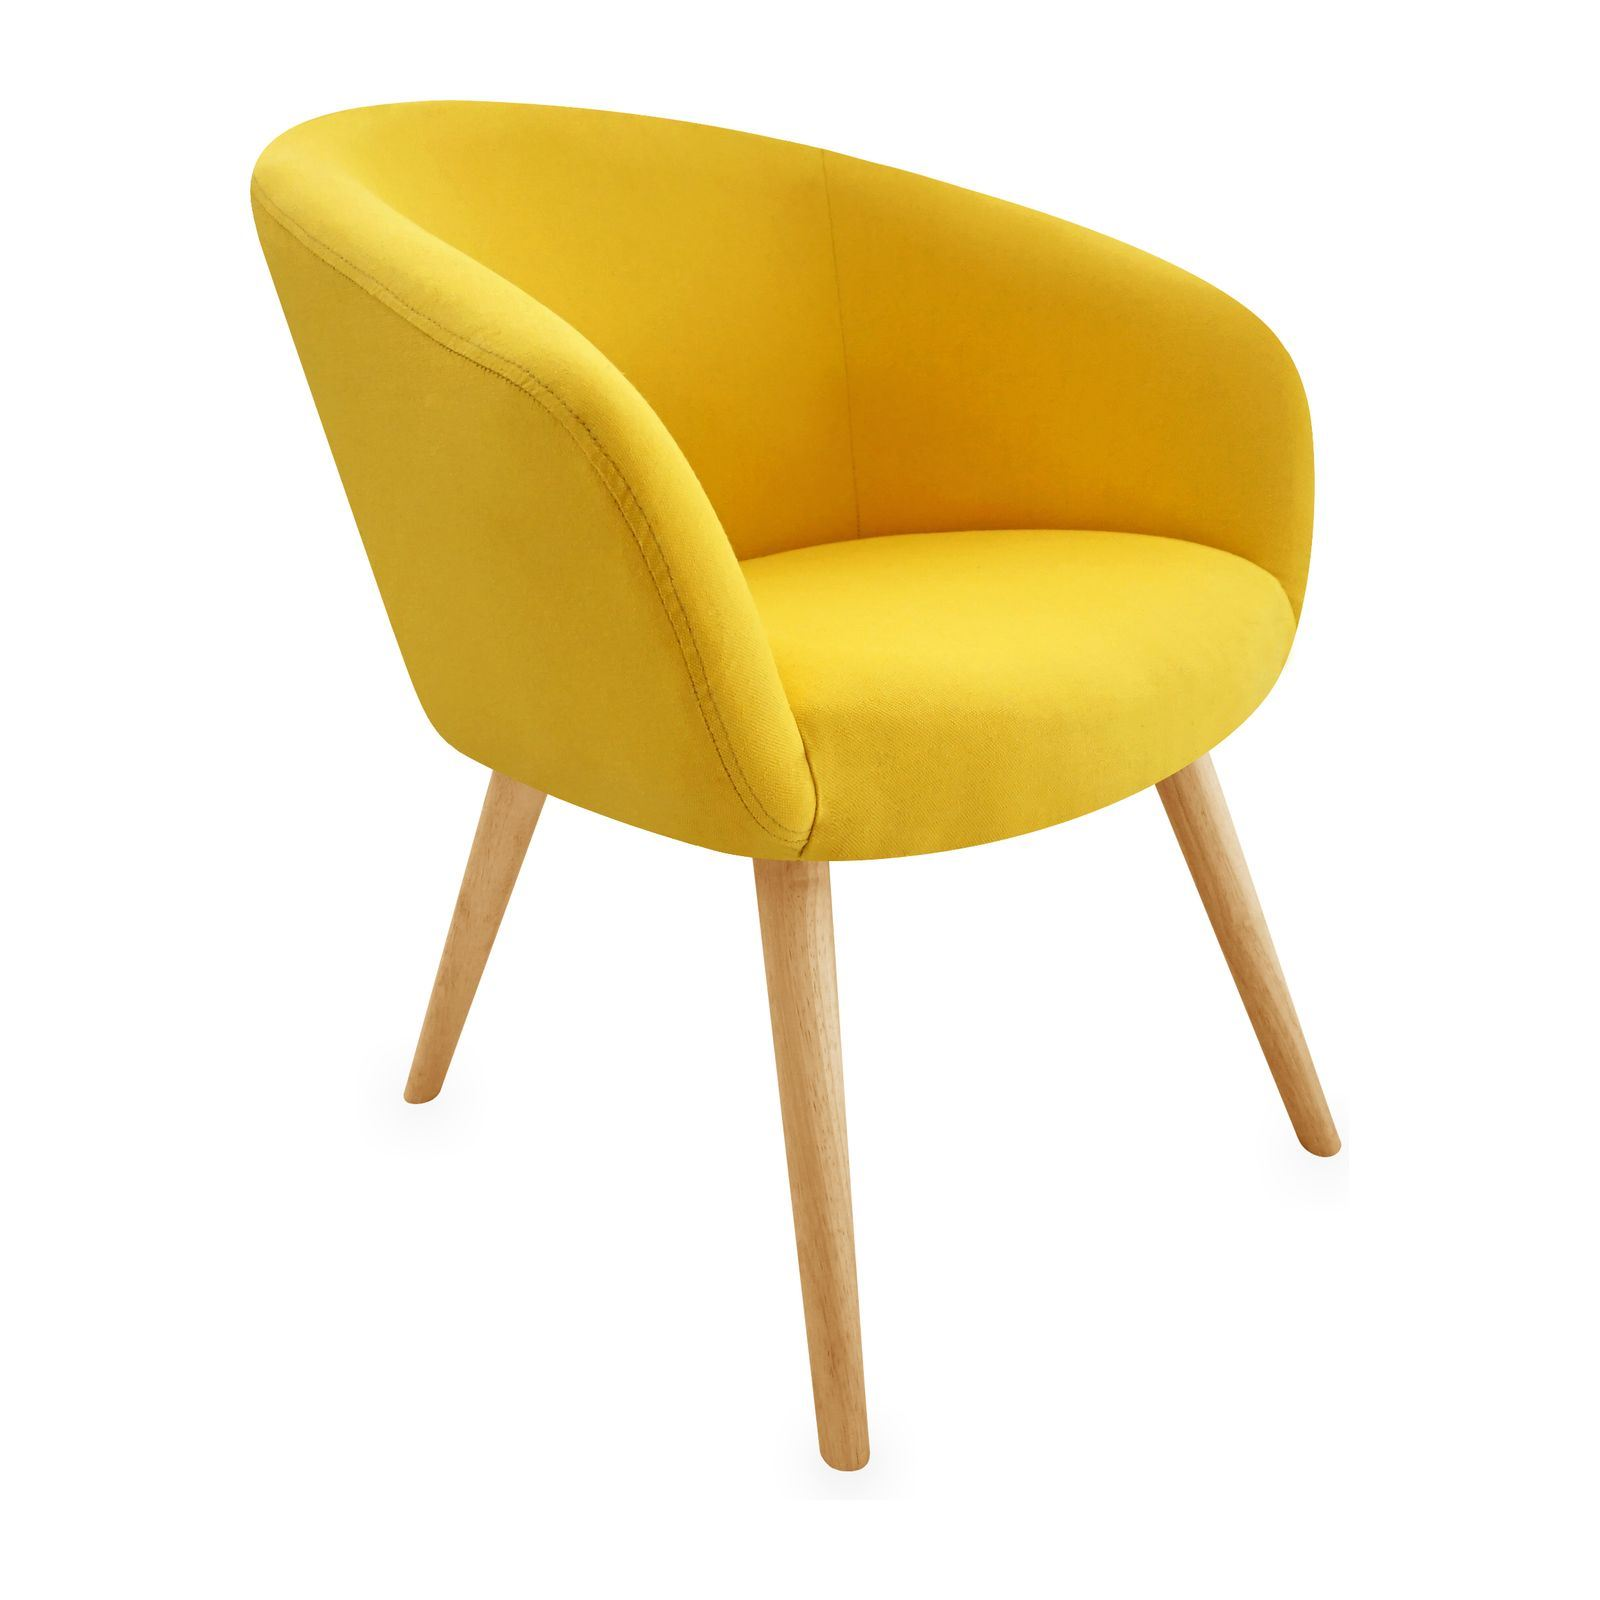 Fauteuil moutarde ikea vintage tela and vintage armchair on pinterest strandmon wing chair - Fauteuil jaune ikea ...